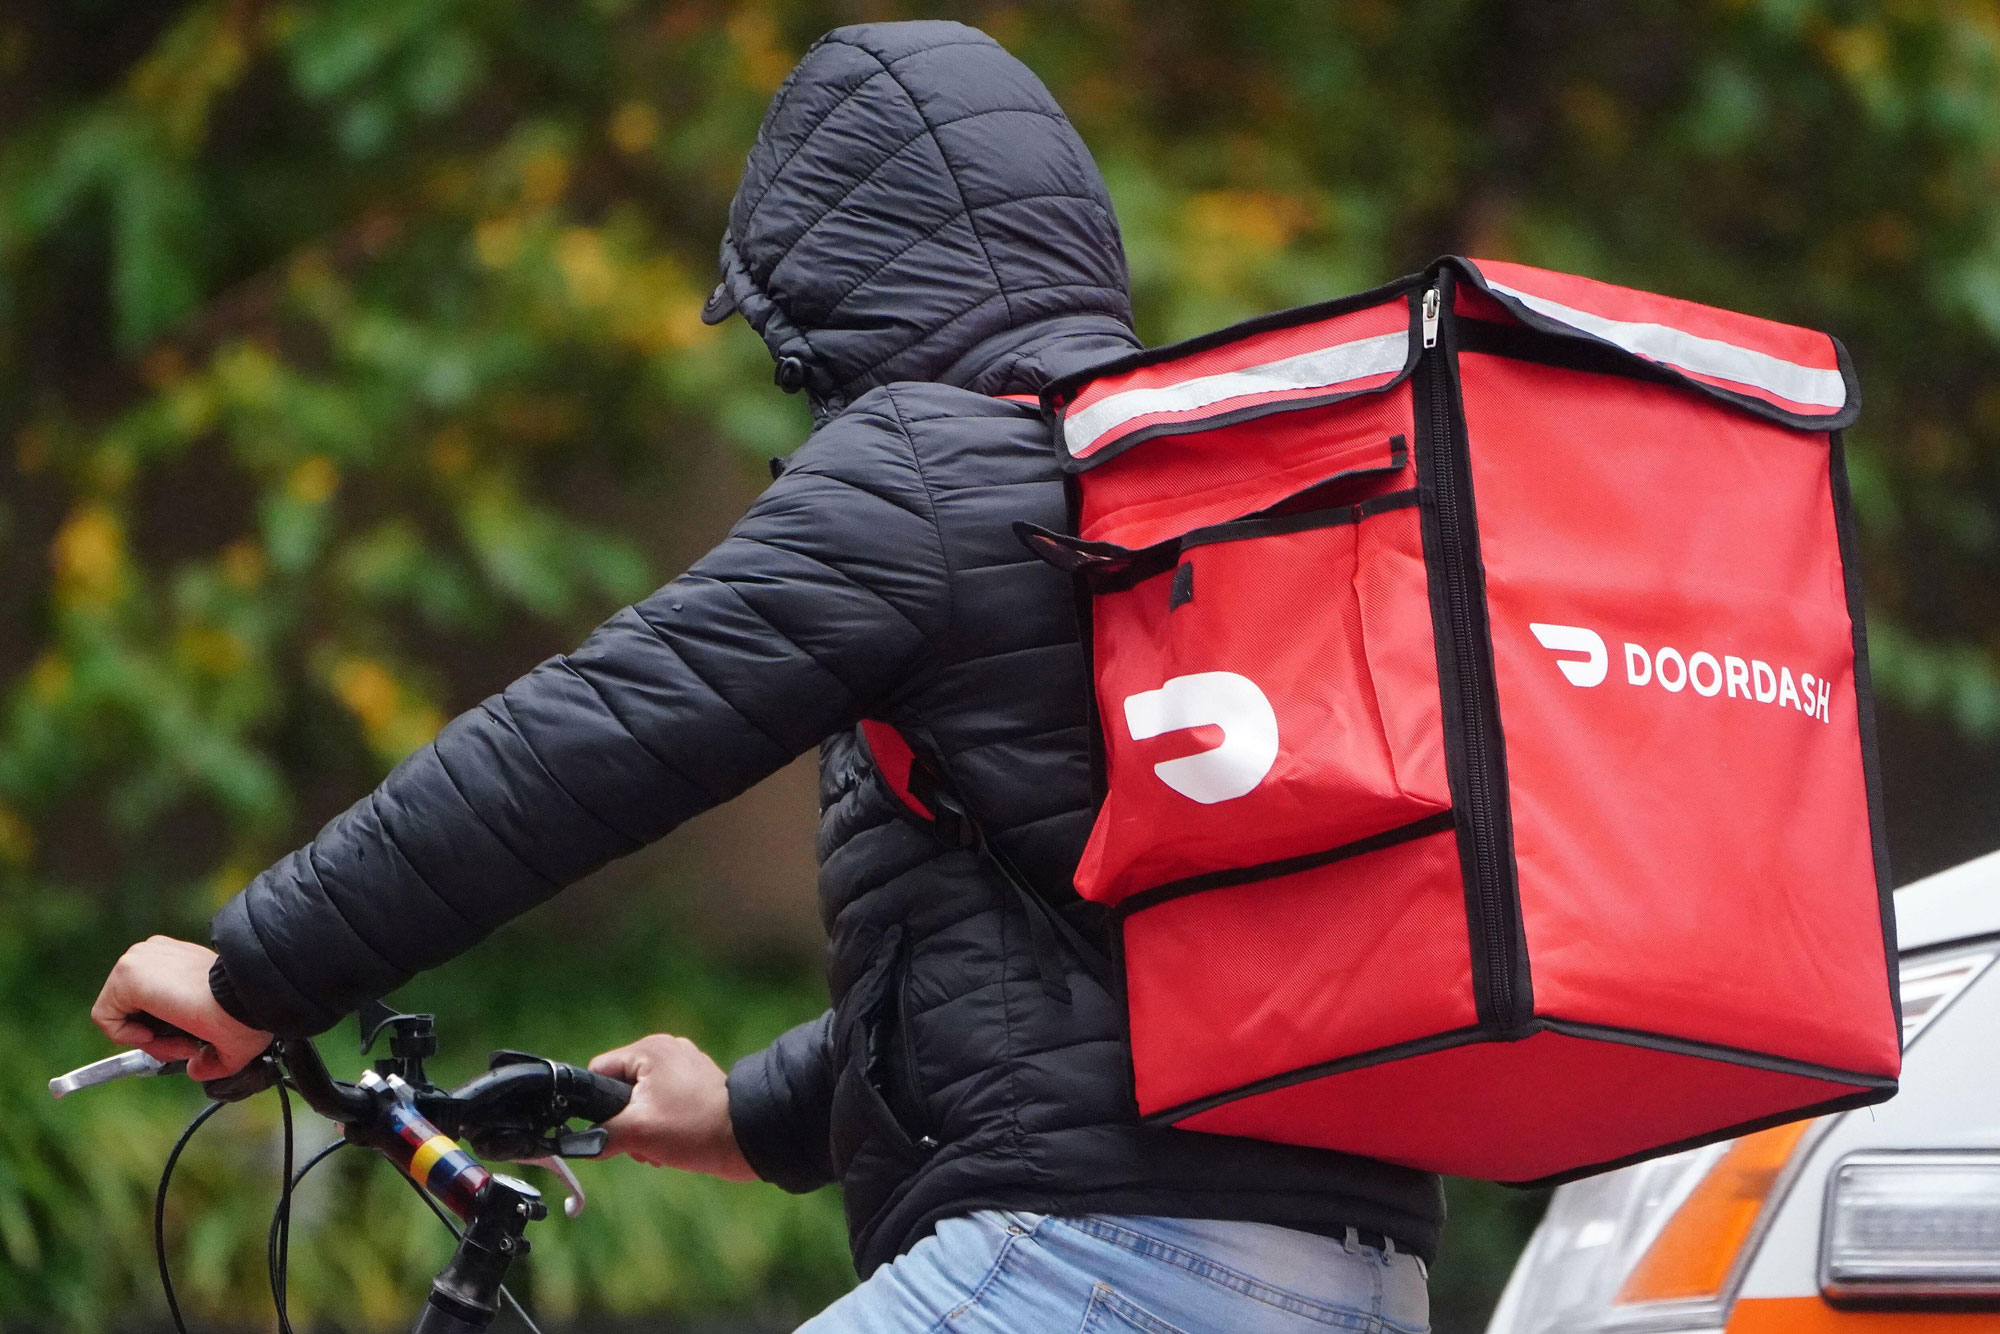 DoorDash delivery person on a bike